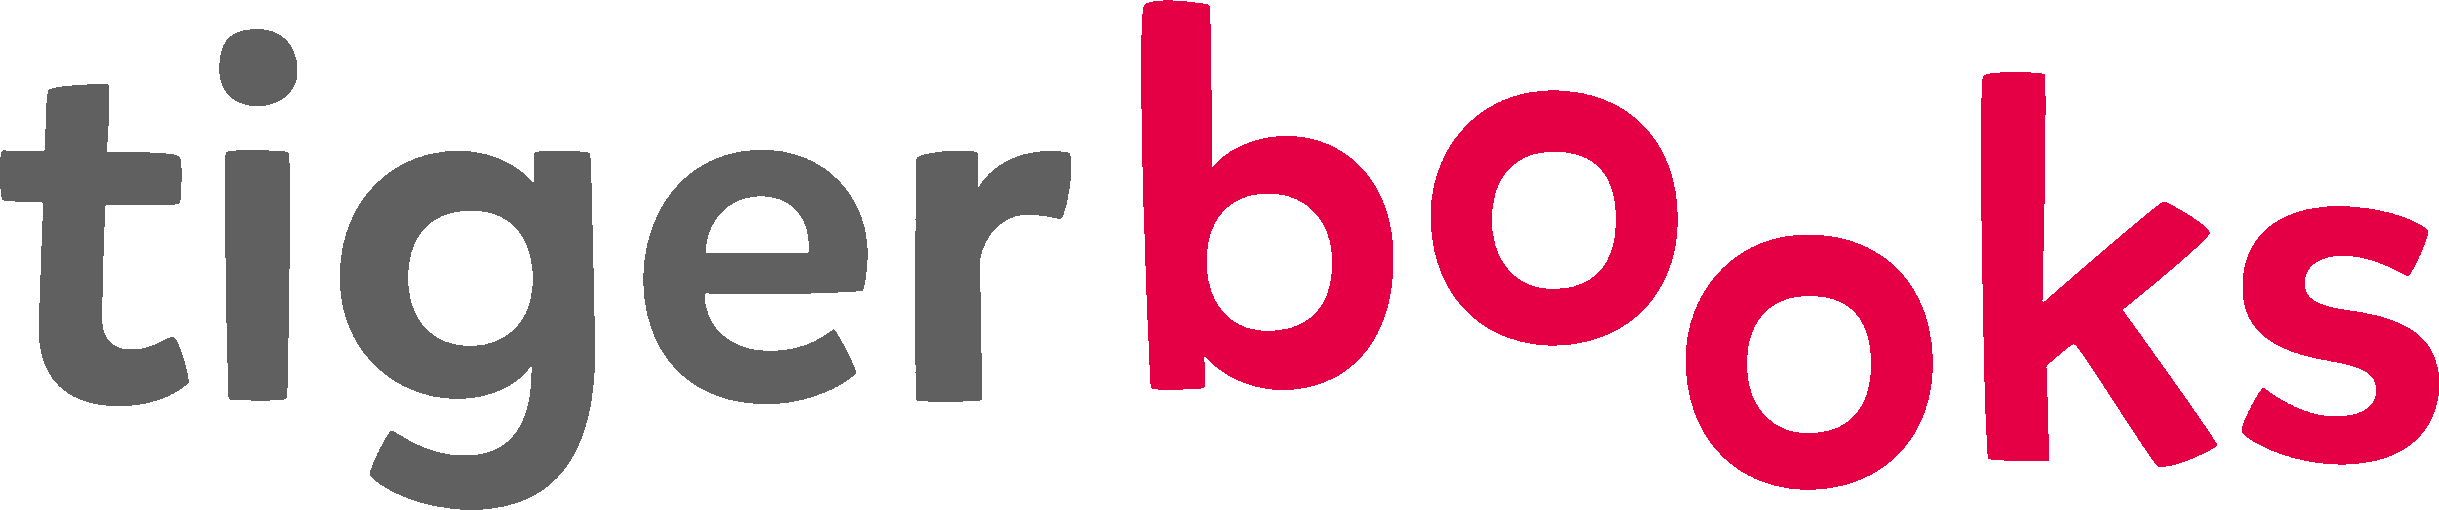 tigerbooks logo